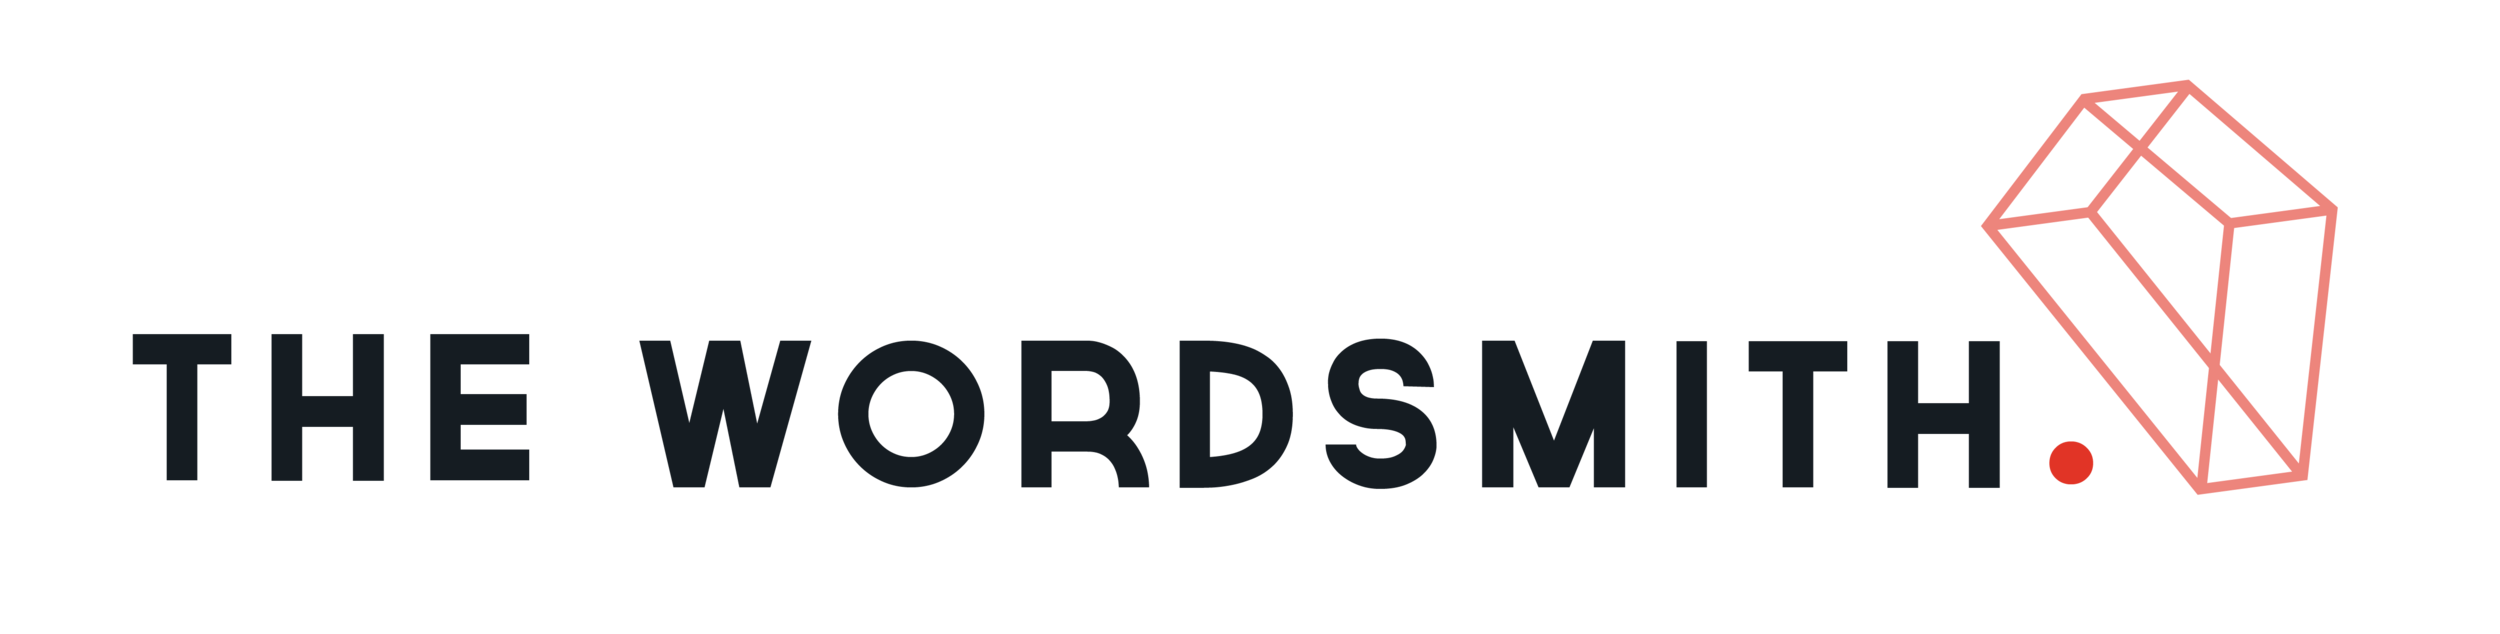 The Wordsmith Logos-04.png